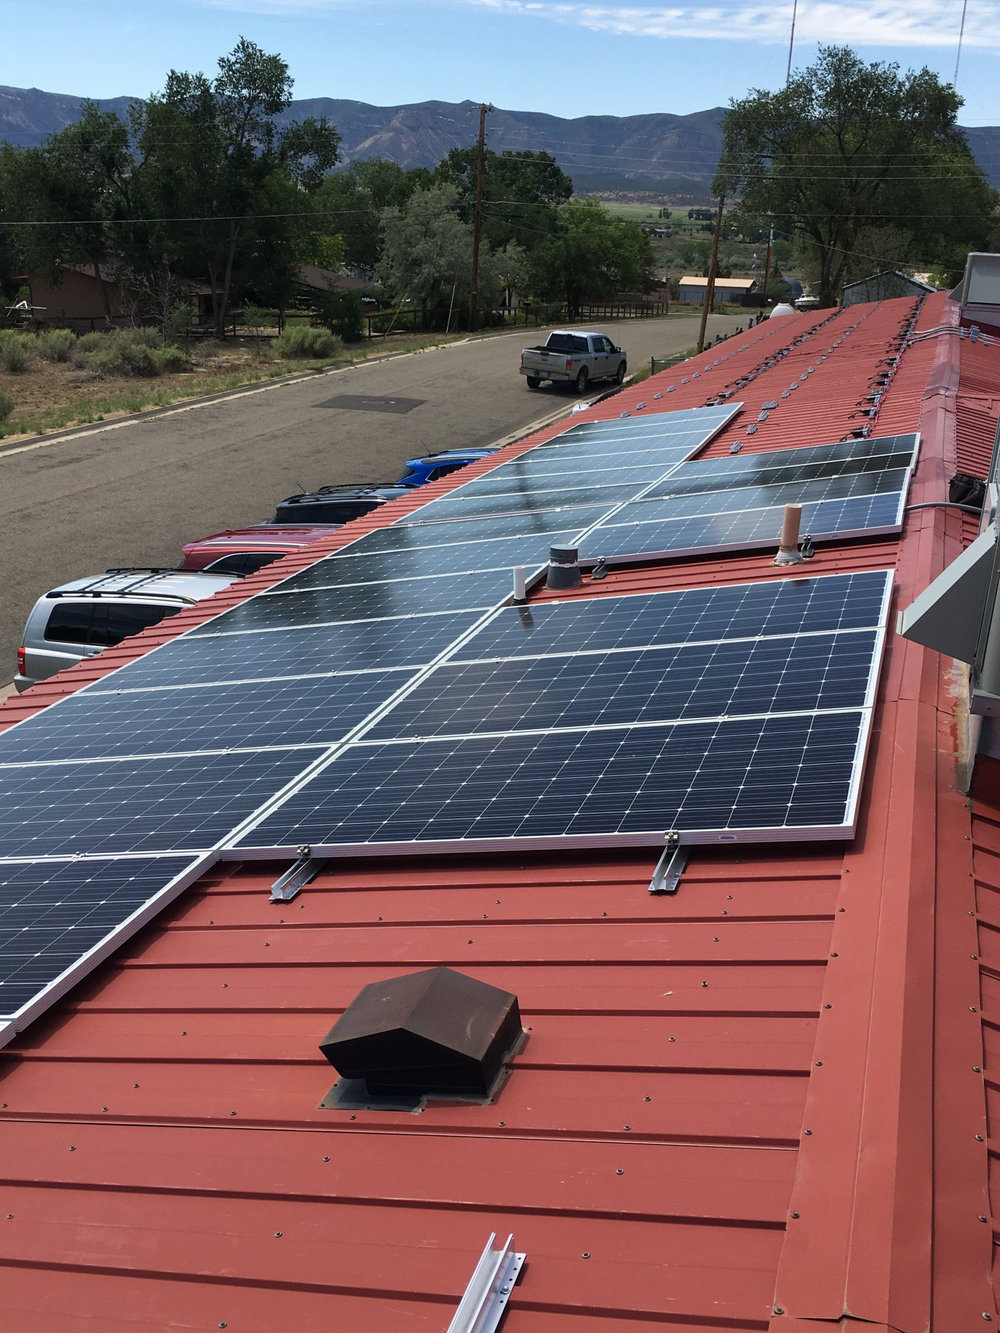 Commercial solar sytem on an office building near Durango